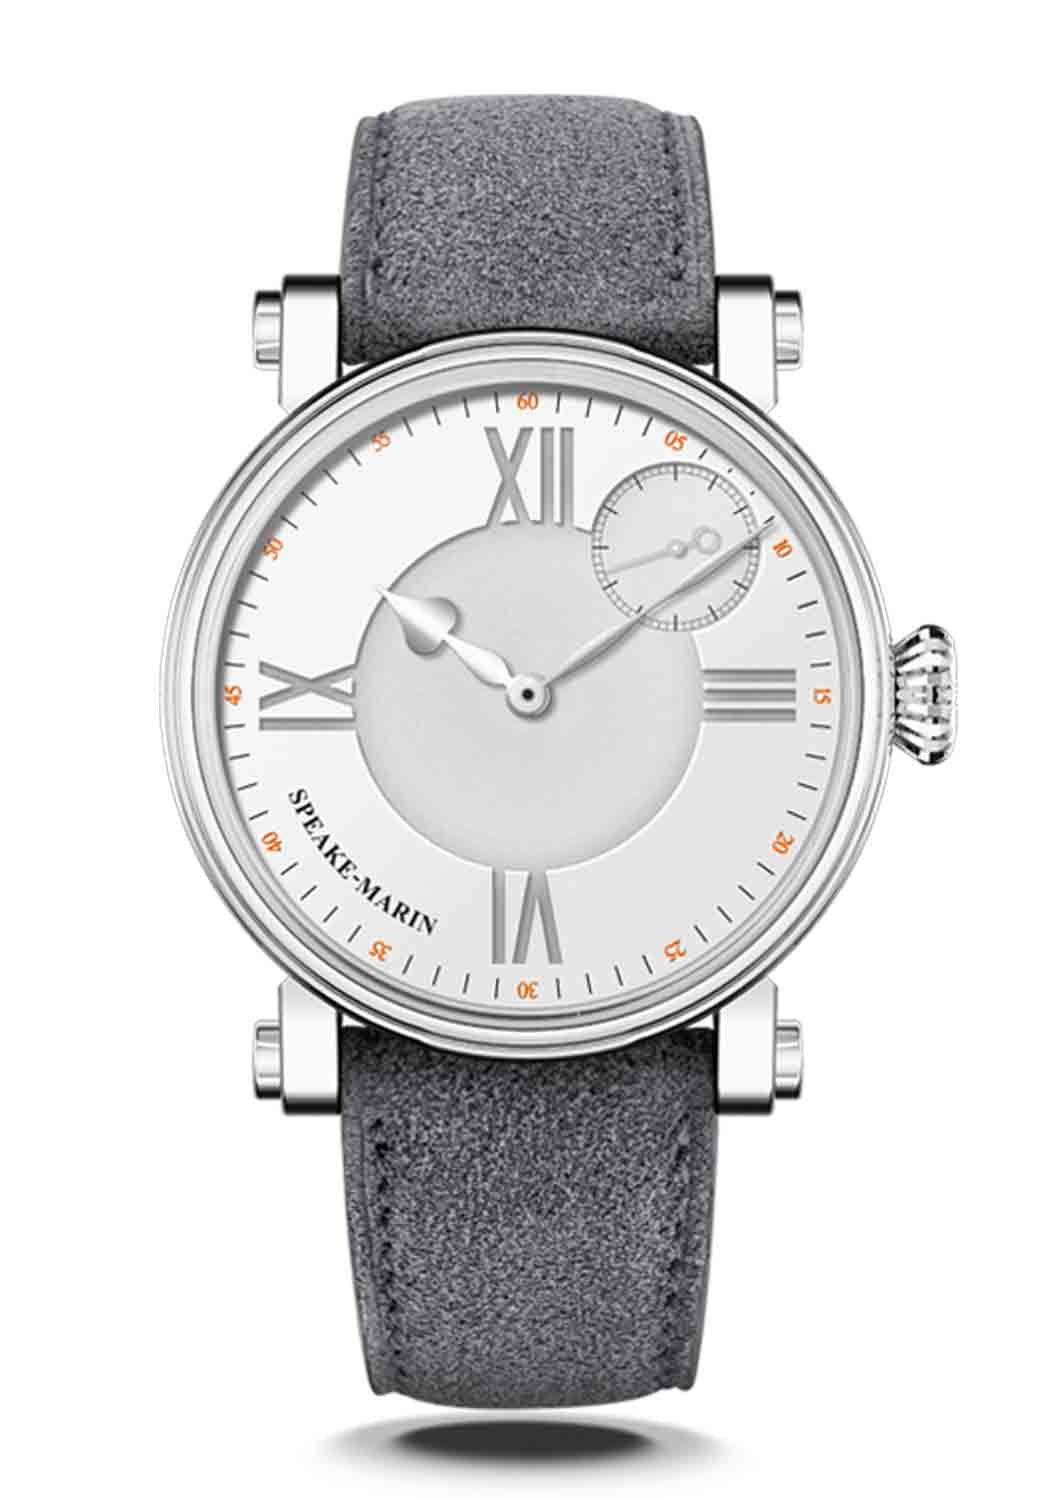 Speake-Marin One & Two Academic Silvery White 38mm